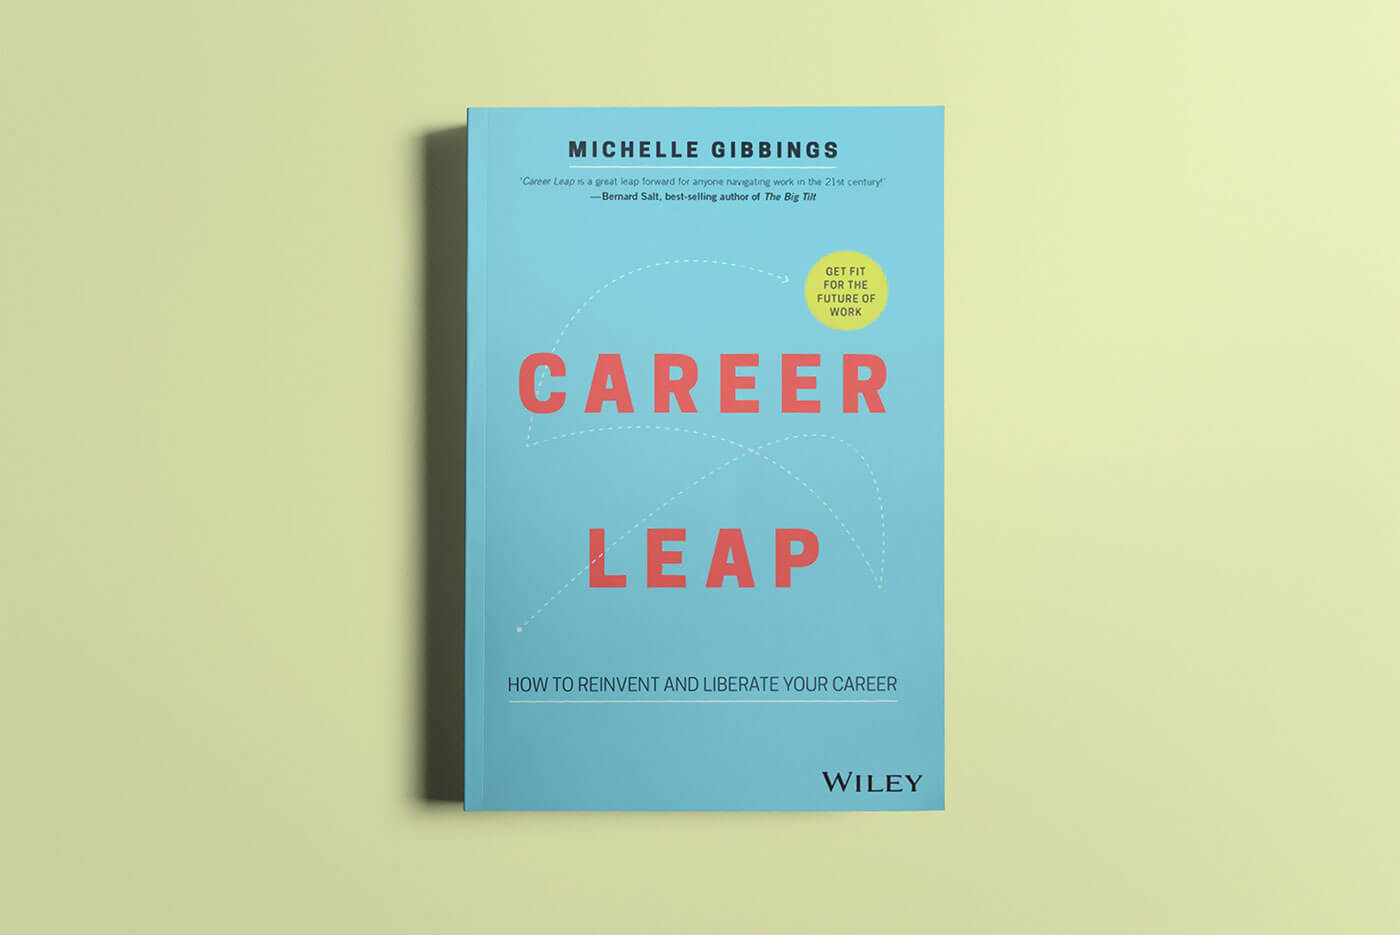 Career Leap-keyyirving